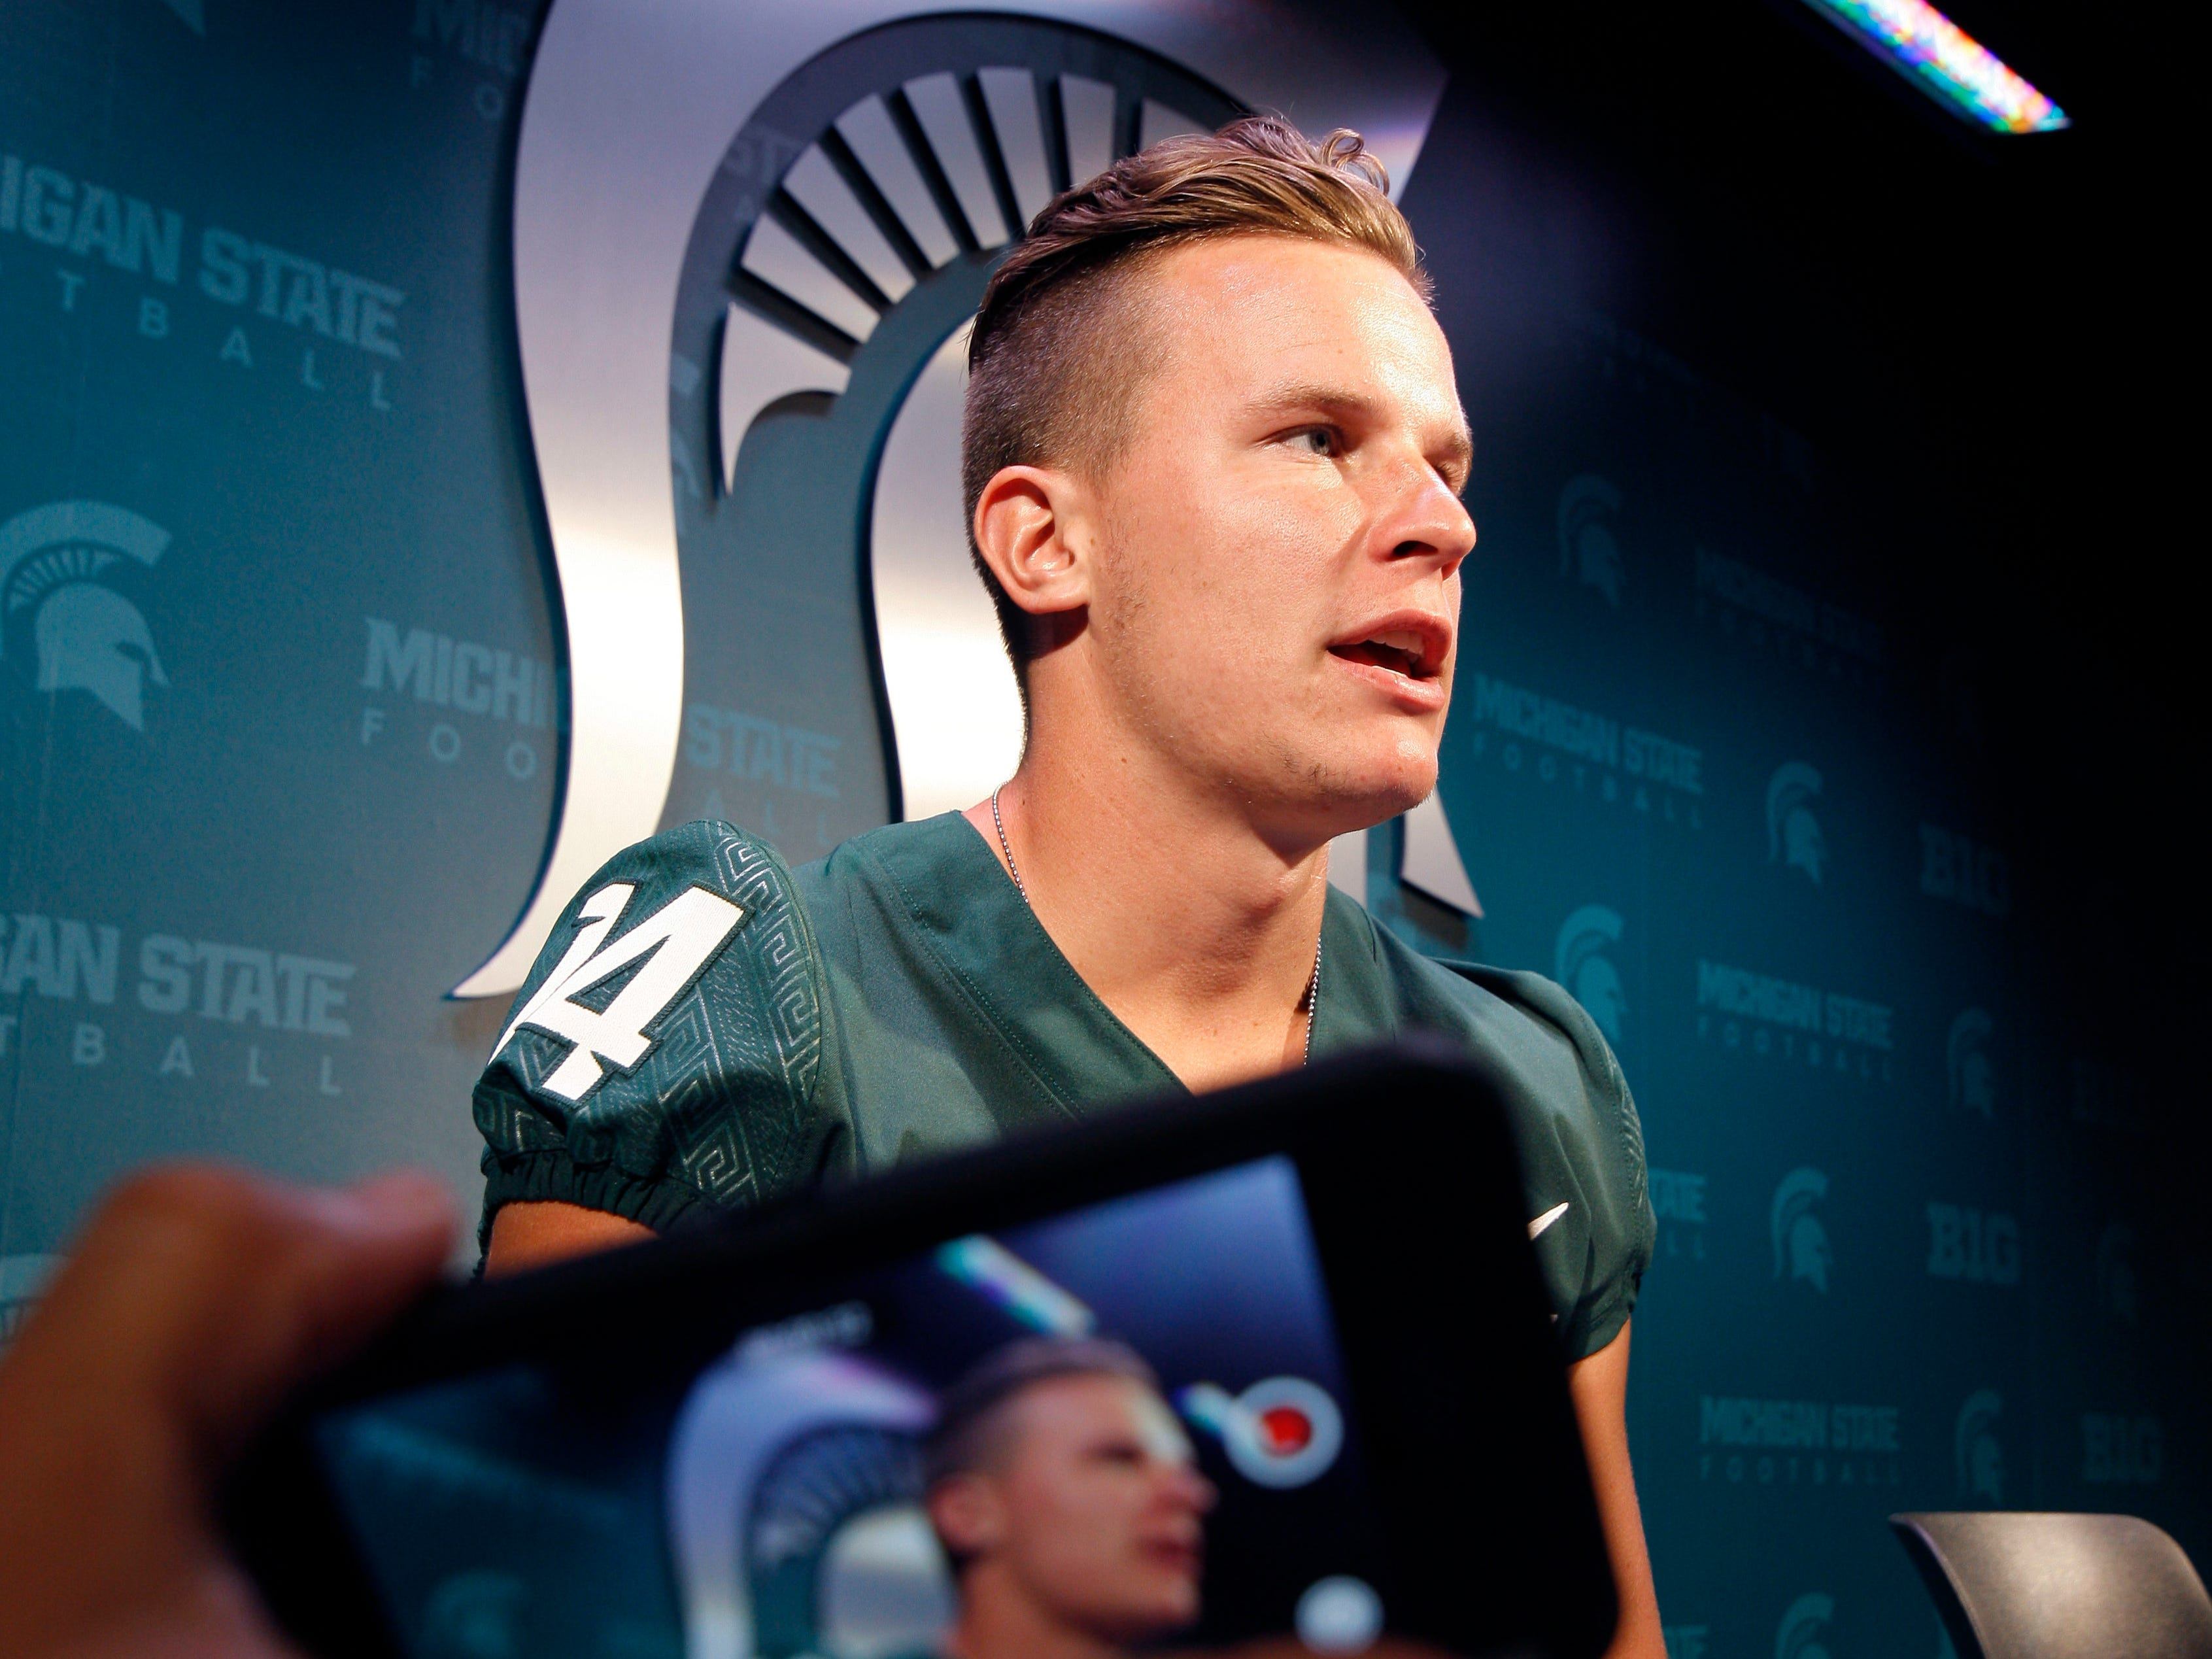 Michigan State quarterback Brian Lewerke talks with reporters during the team's NCAA college football media day, Monday, Aug. 6, 2018, in East Lansing, Mich.